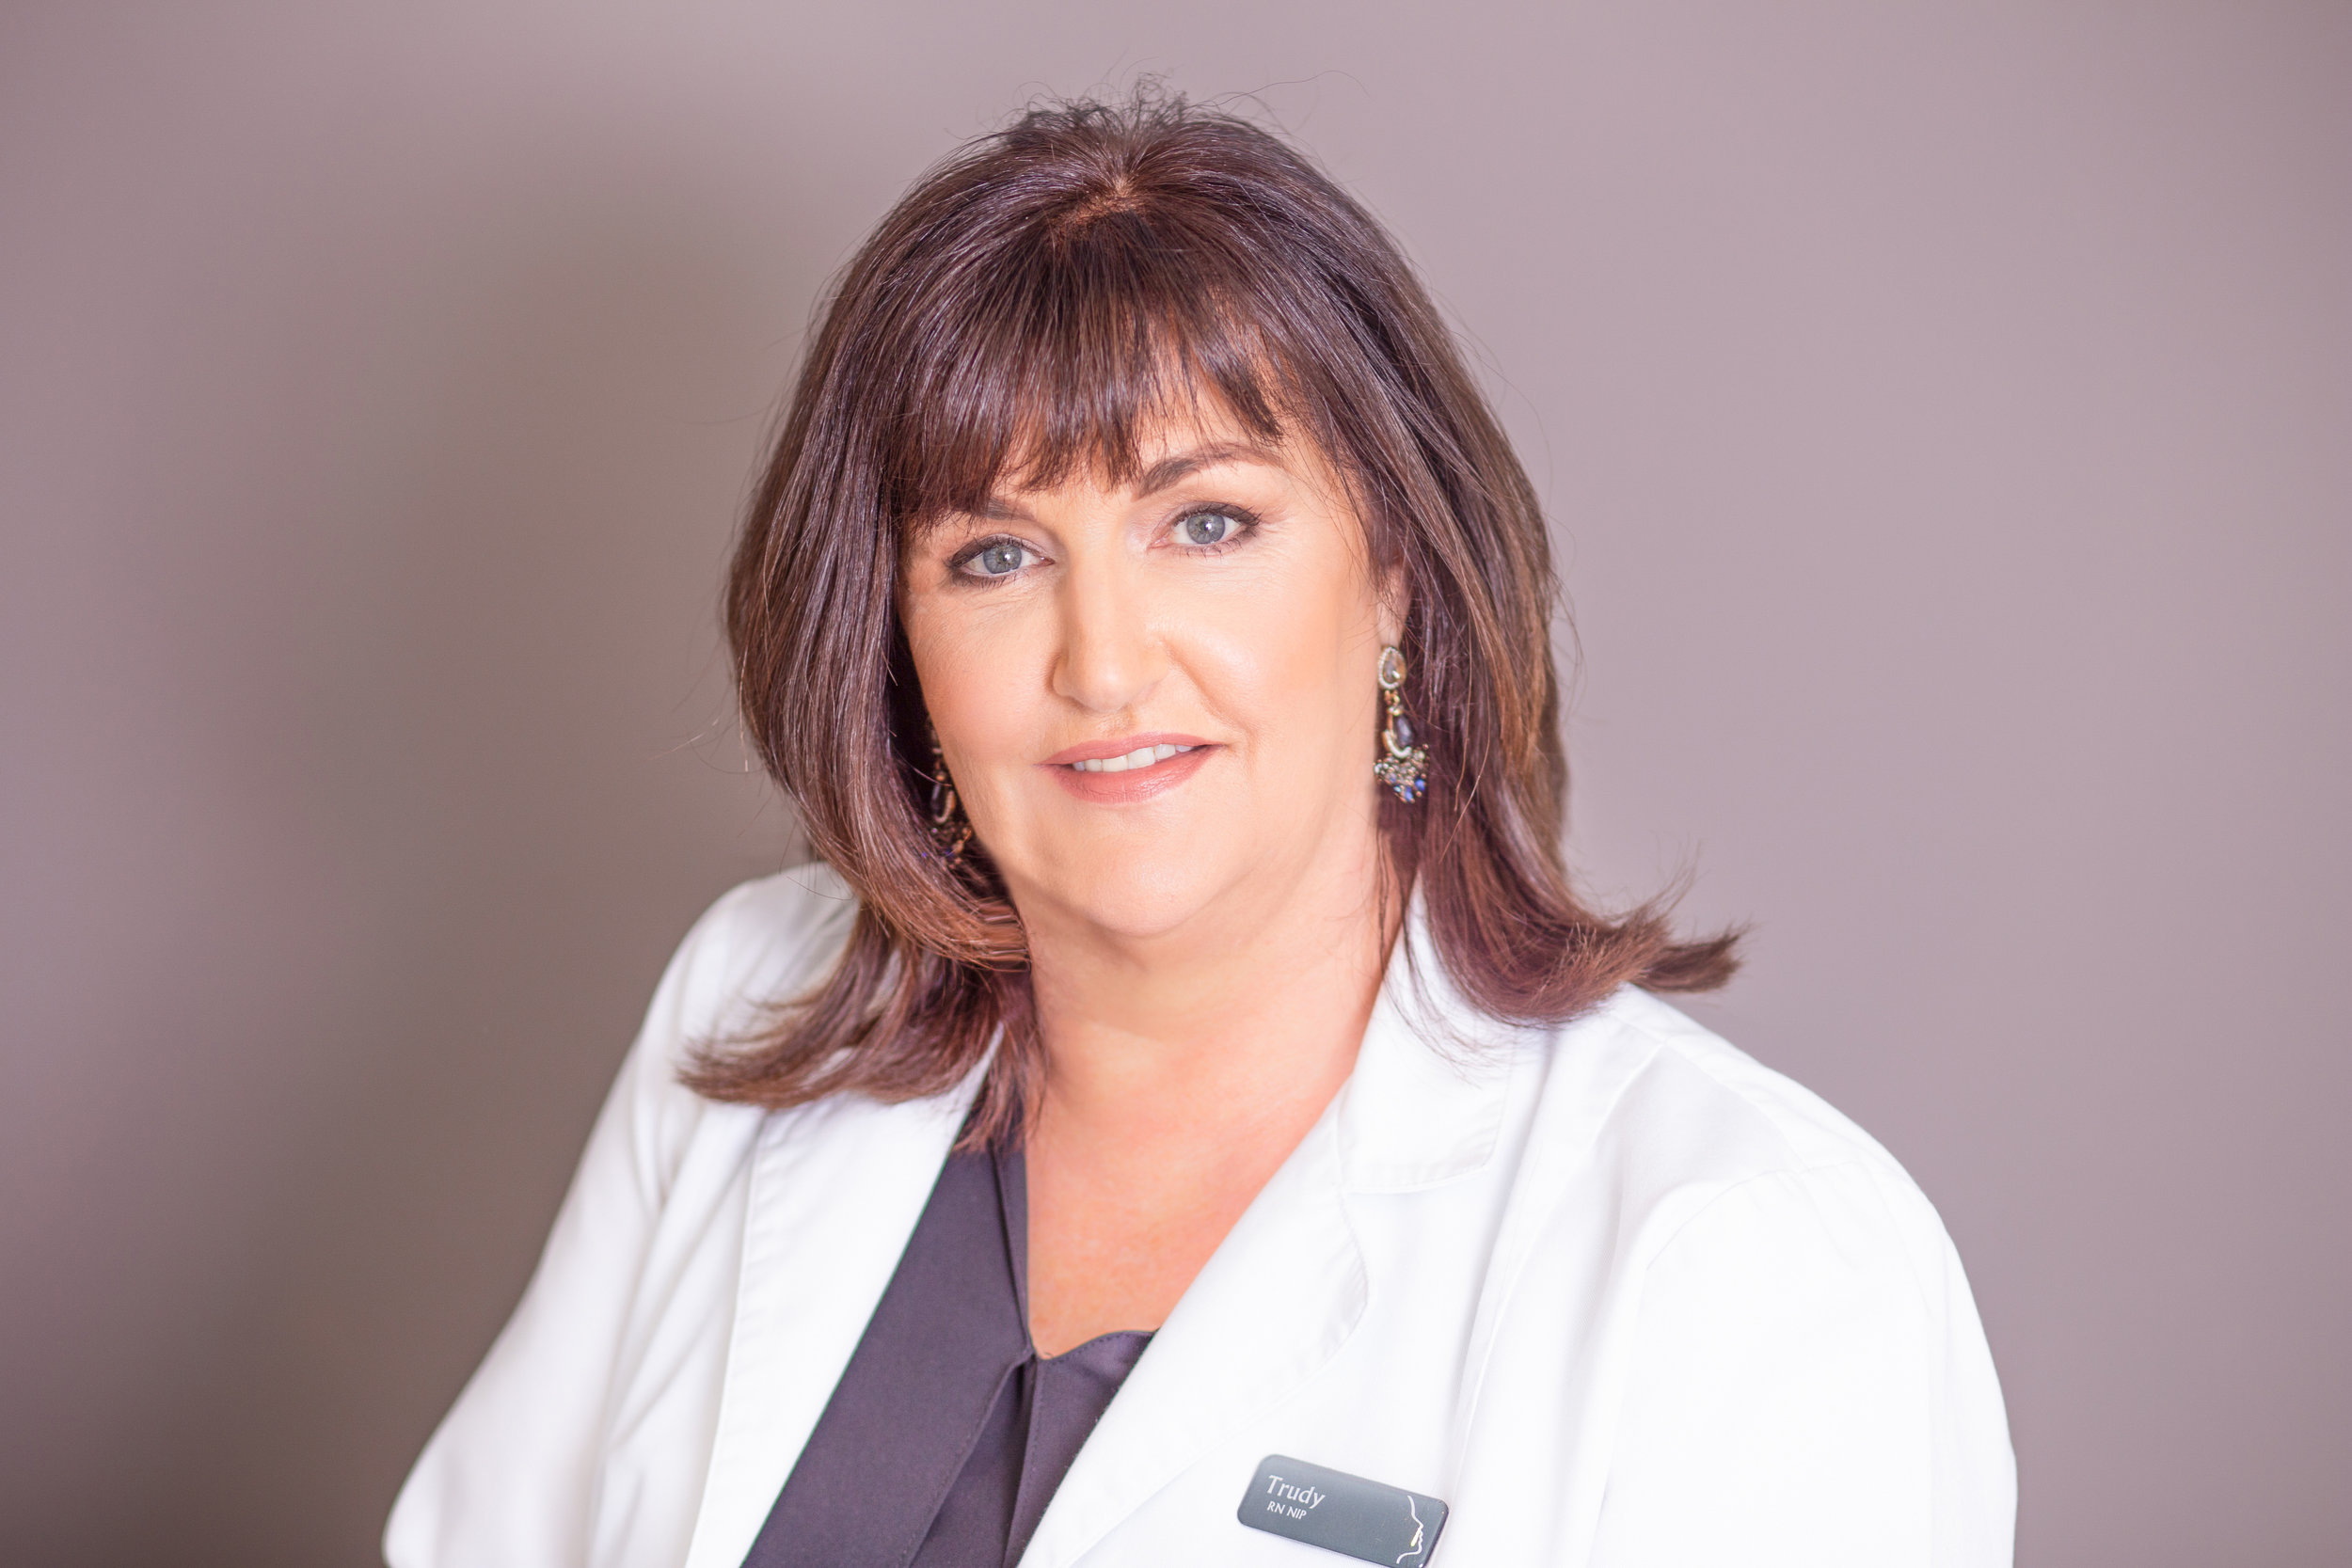 """I believe in customising treatments for patients so that a natural look is enhanced rather than changed"" - ~ Trudy Friedman - Managing Director, Aesthetic Skin Centre"